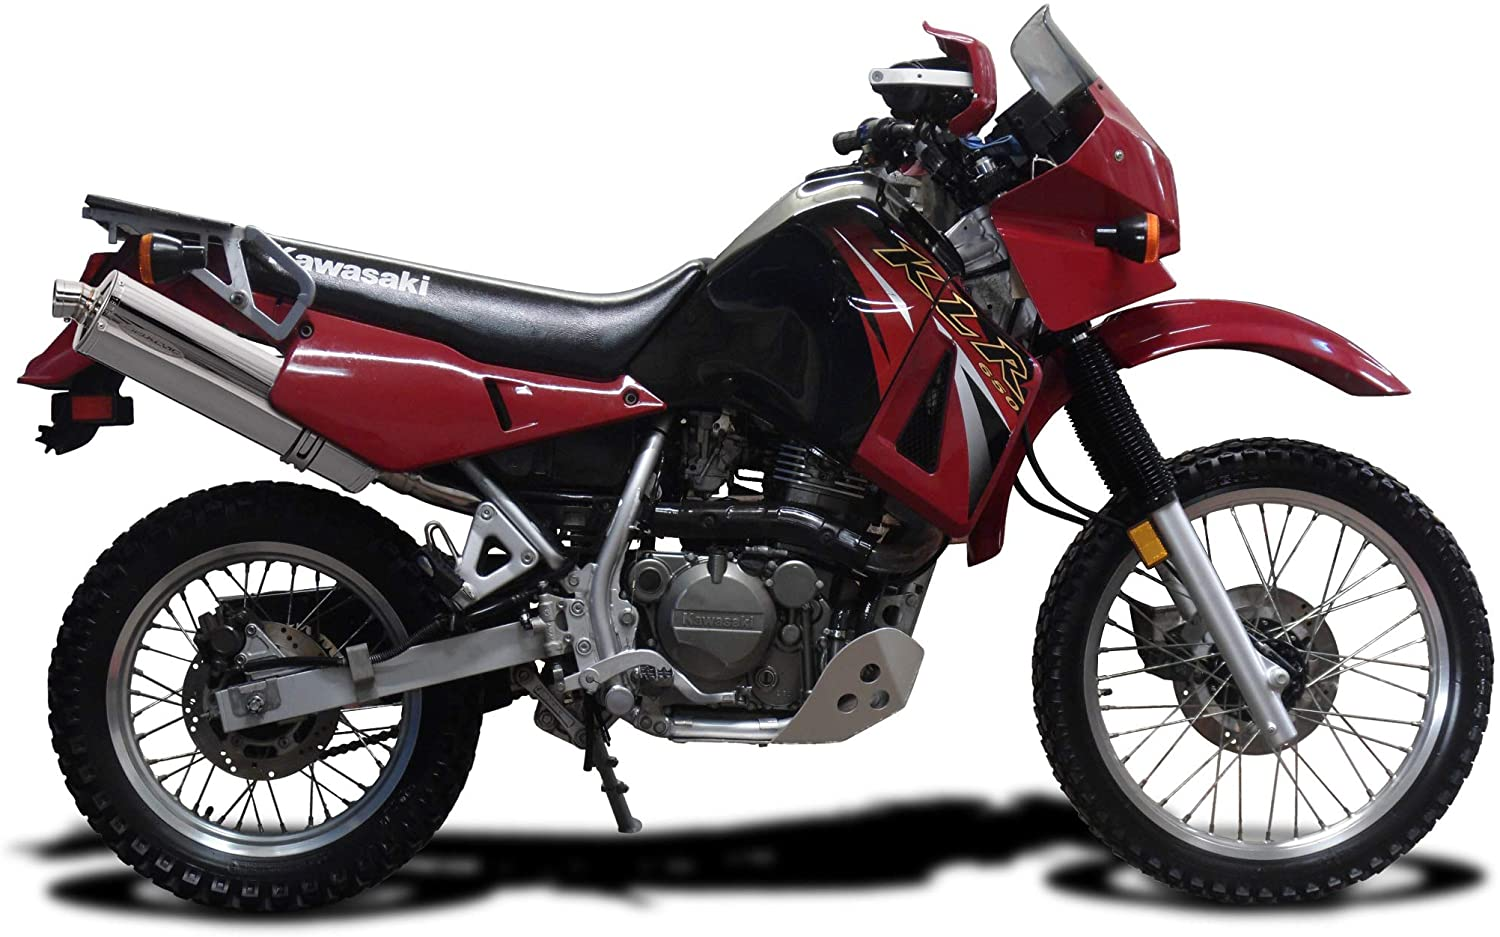 Delkevic Aftermarket Slip On compatible with Kawasaki KLR650A 18